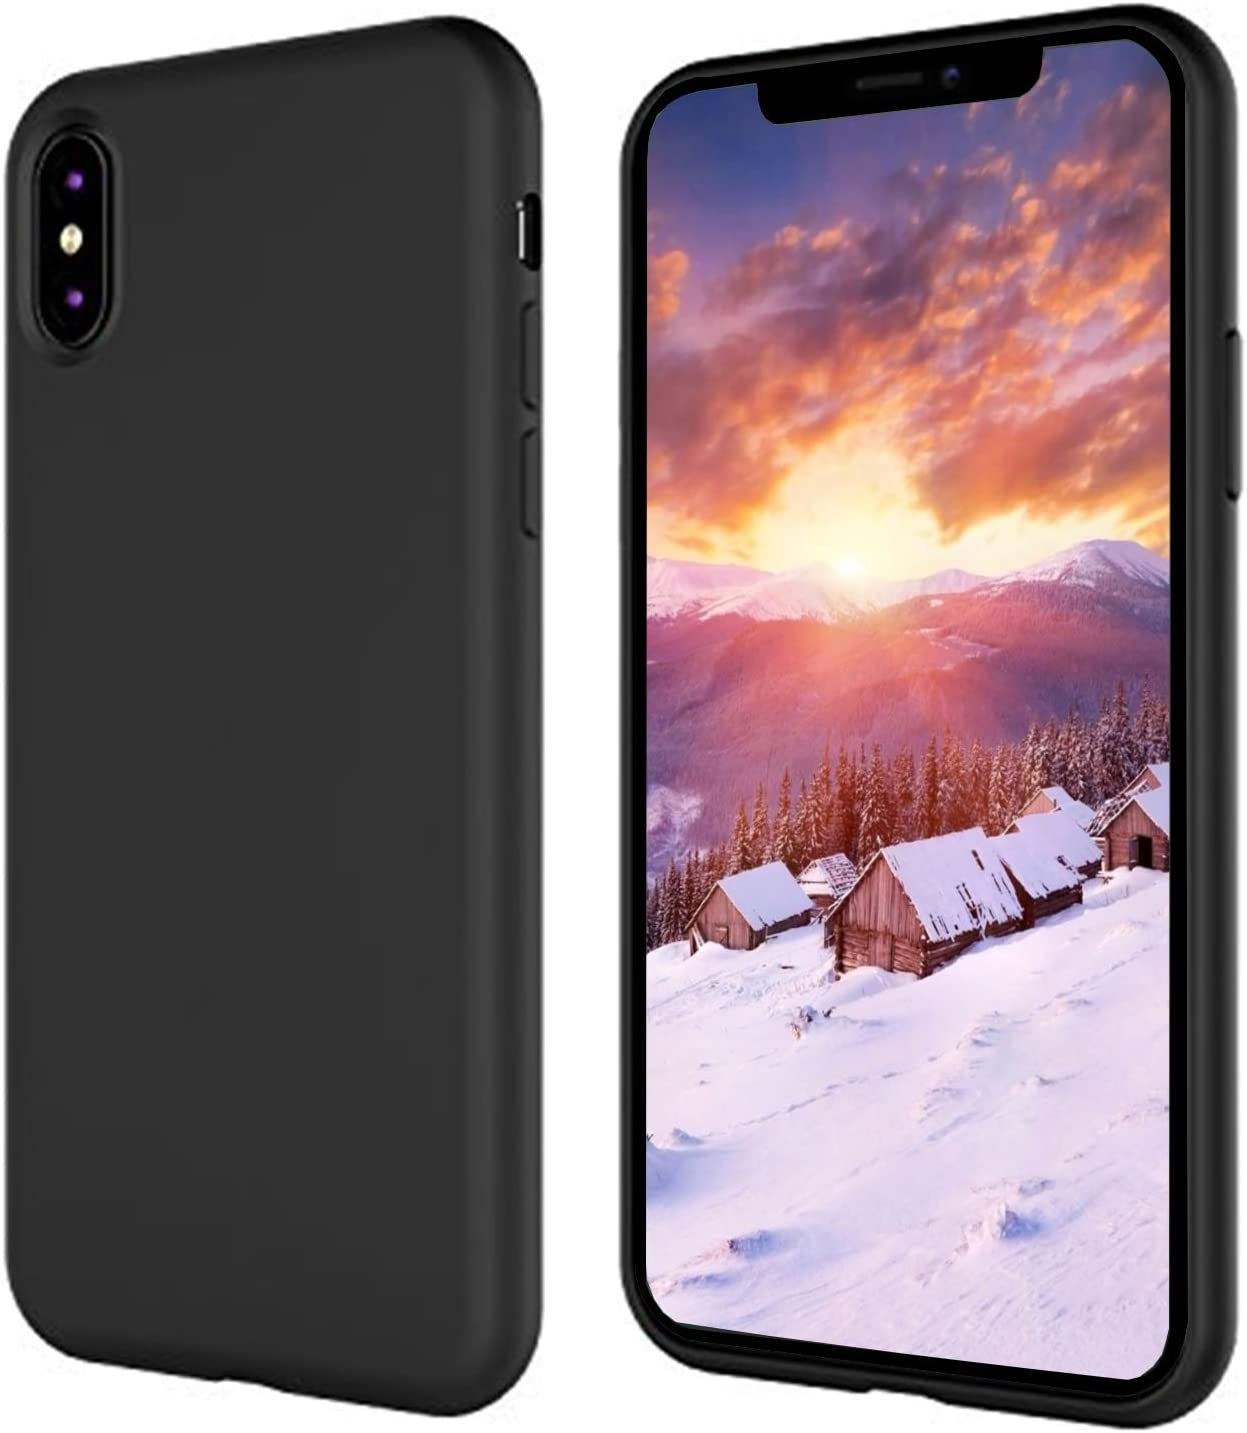 iPhone X Silicone Case, iPhone 10 Silicone Case, Full Body Drop Shockproof Protection Matte Case[Screen & Camera Protection] Gel Rubber Phone Case with Soft Cushion for Apple iPhone X 5.8 inch - Black